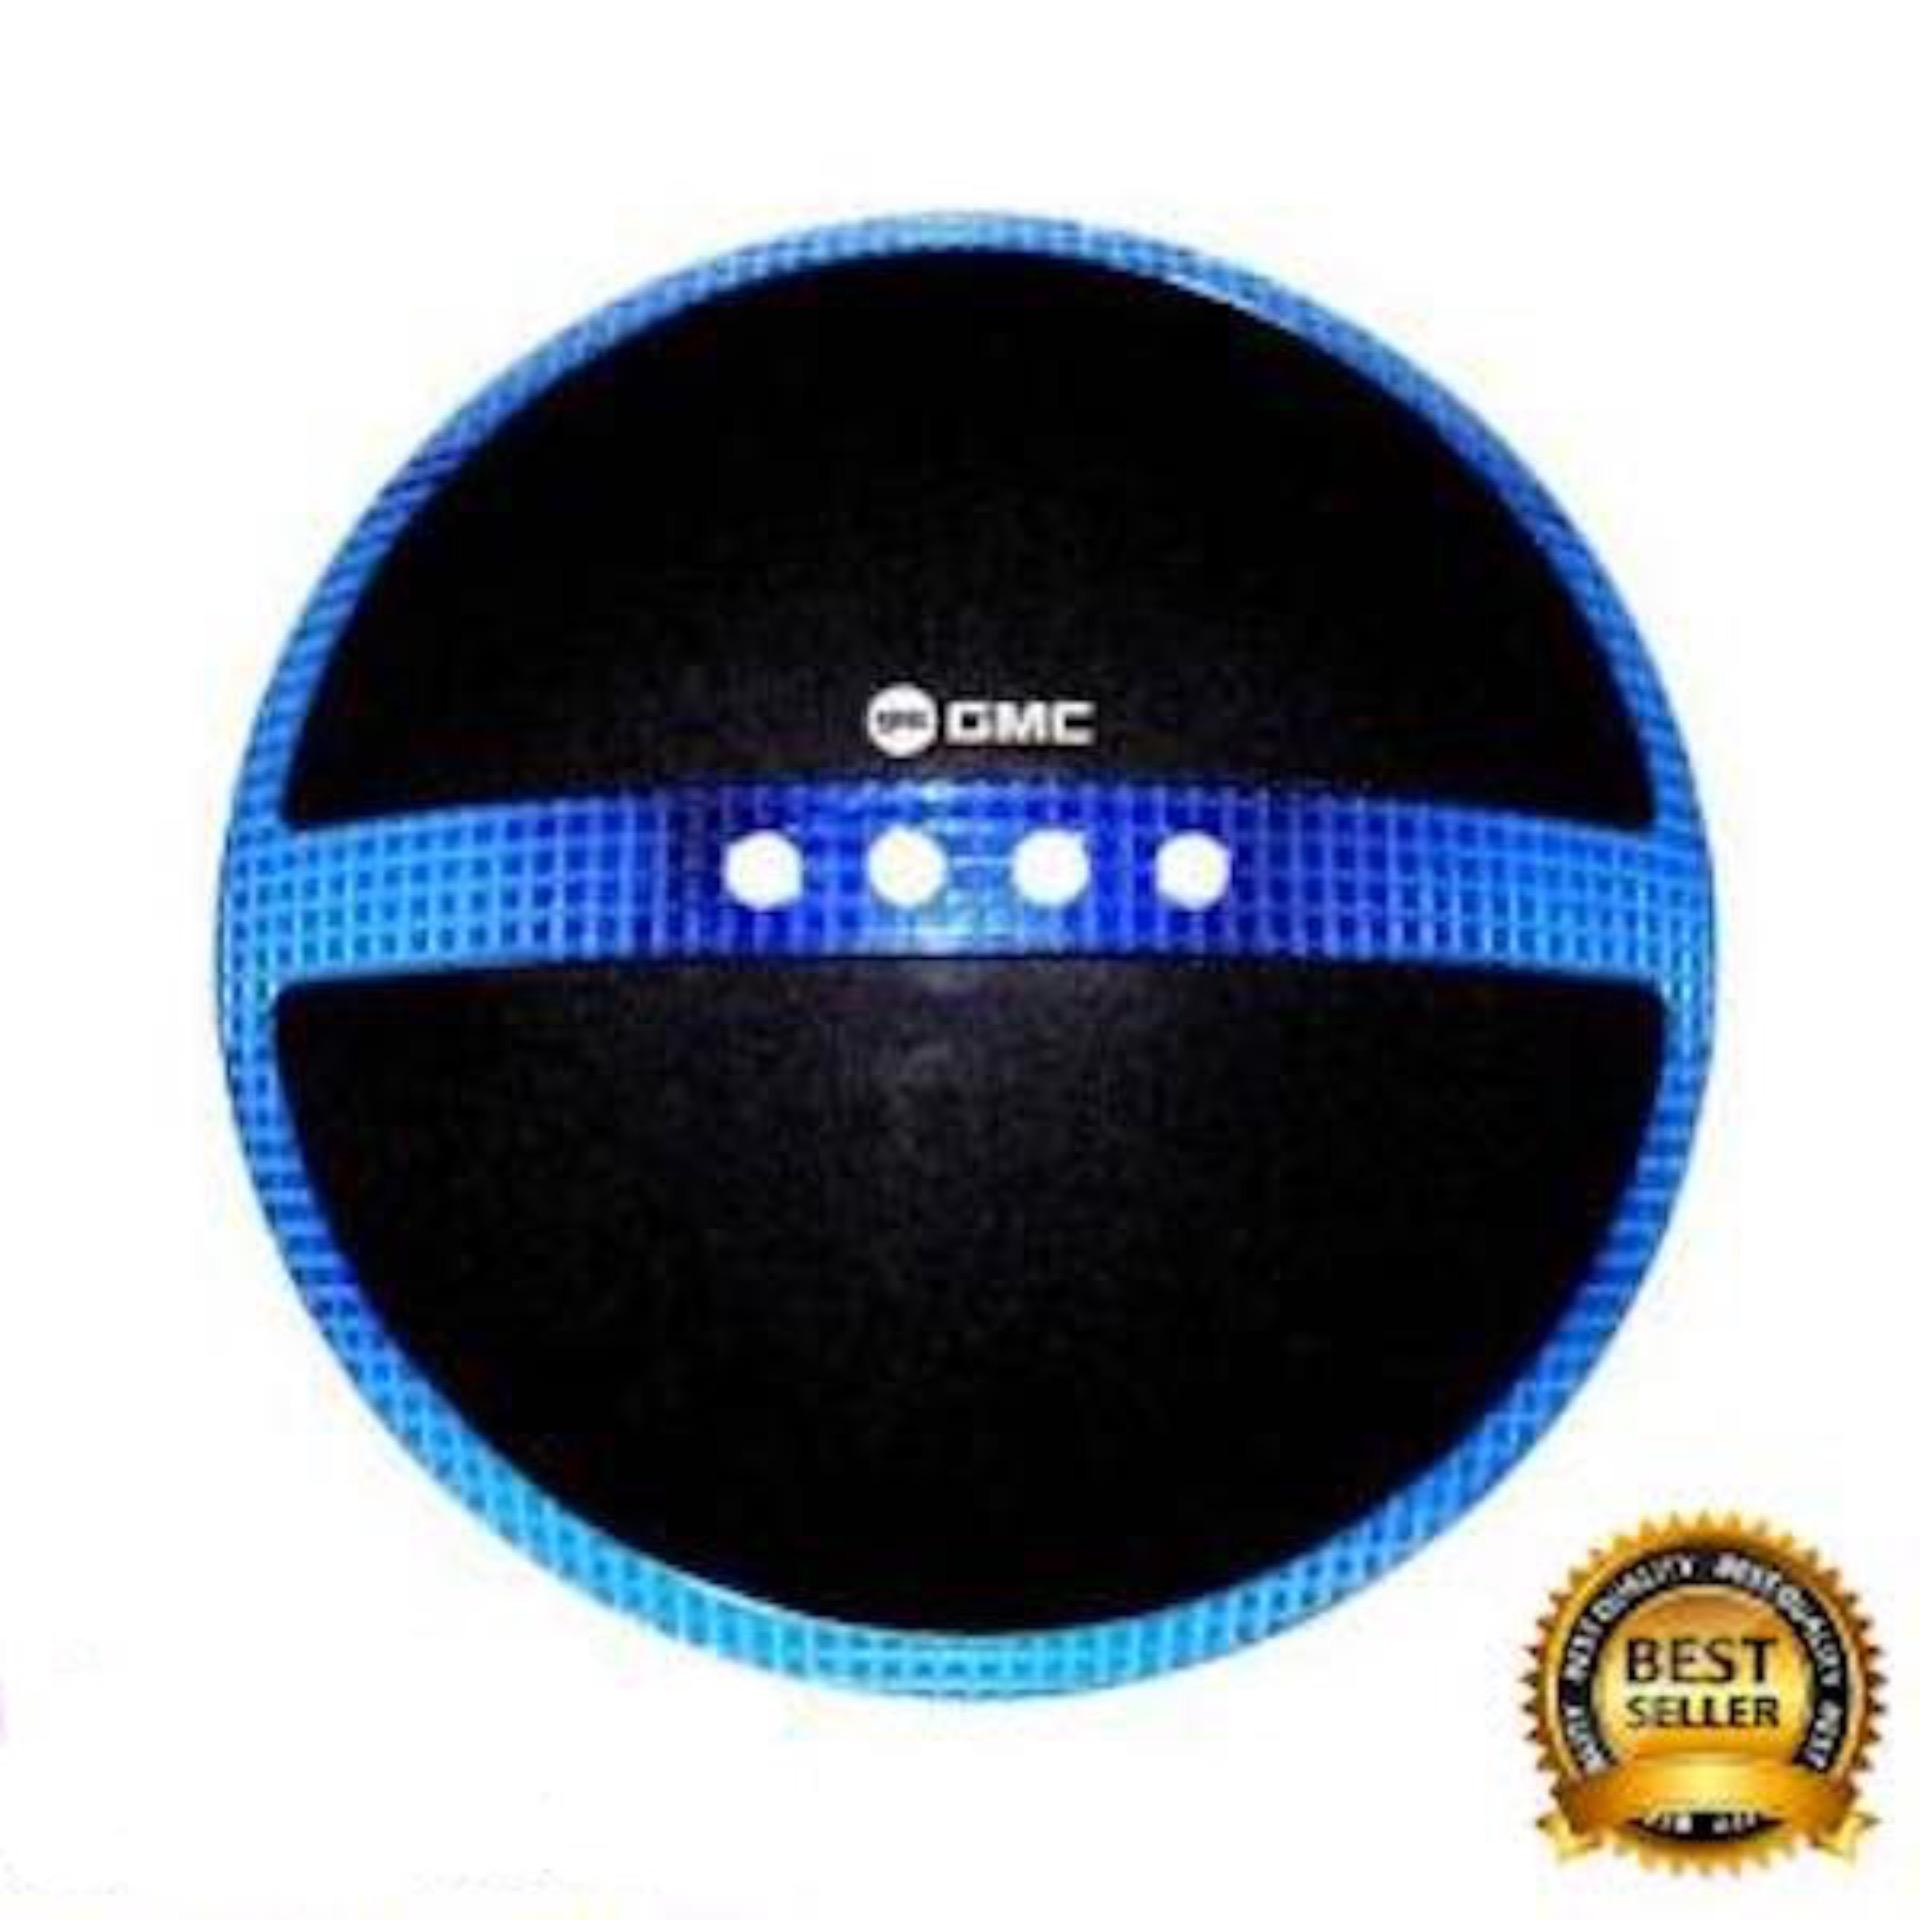 Promo Gmc Speaker Multimedia 898B